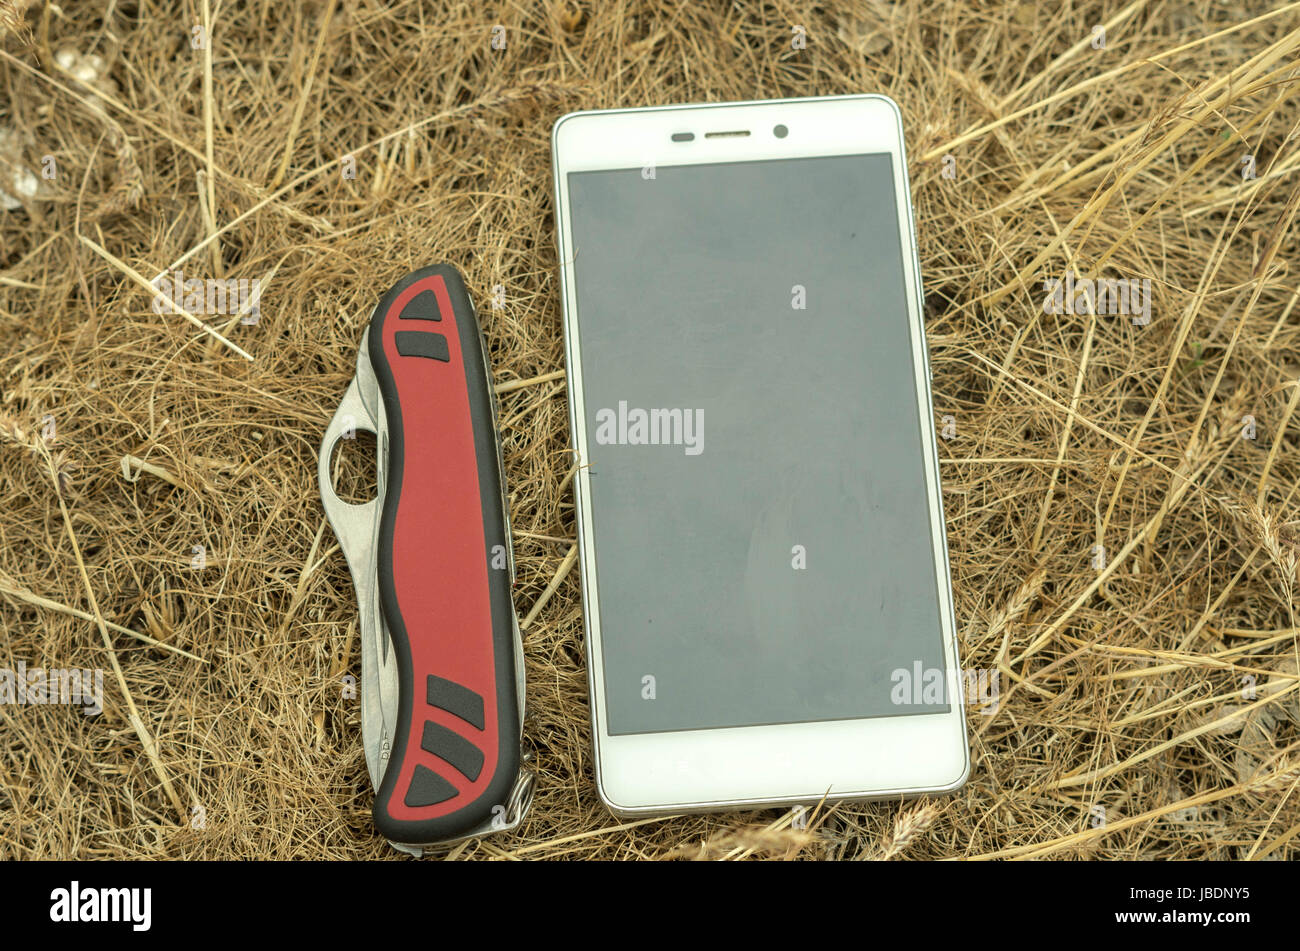 Mobile phone and knife in the manger. Multi-functional knife. - Stock Image